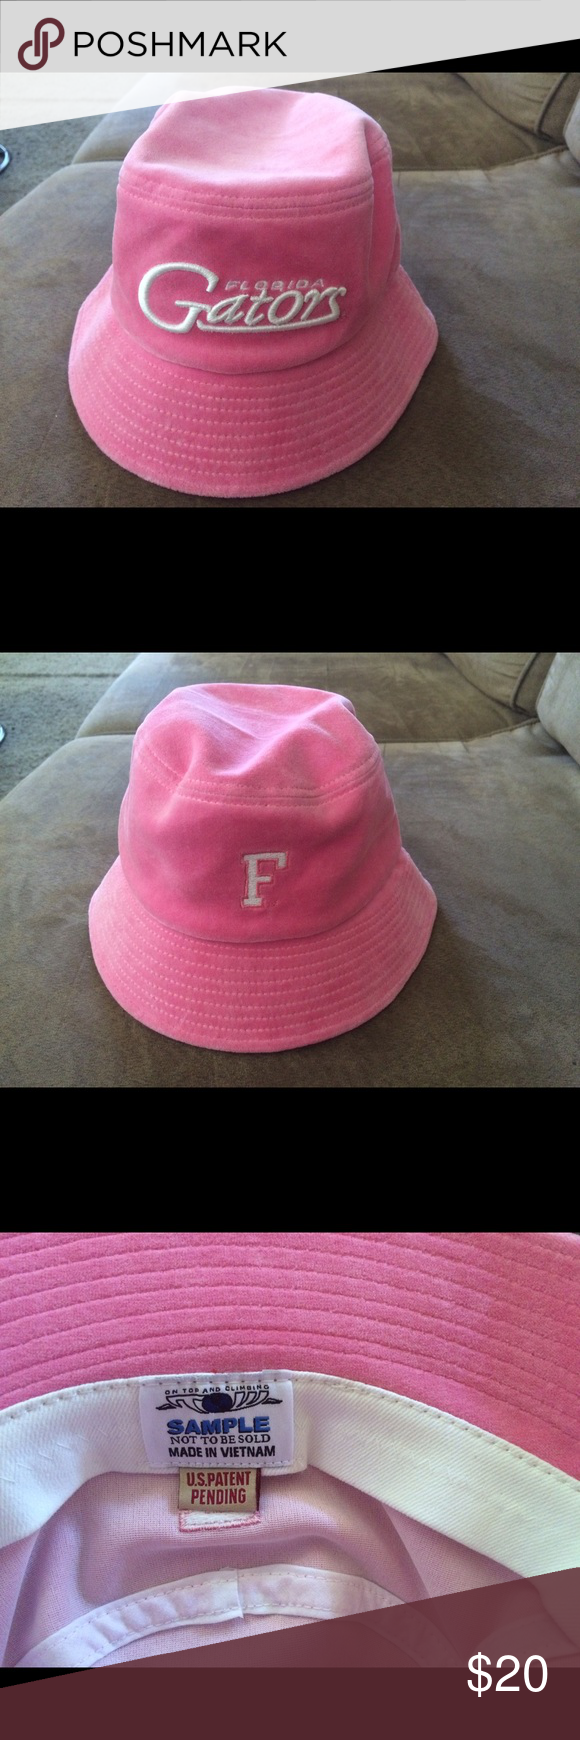 db4c17187b7 Florida Gators ladies pink velour bucket hat. Florida Gators ladies pink  velour bucket hat. No size indicated. Tag states sample. I purchased hat at  sports ...